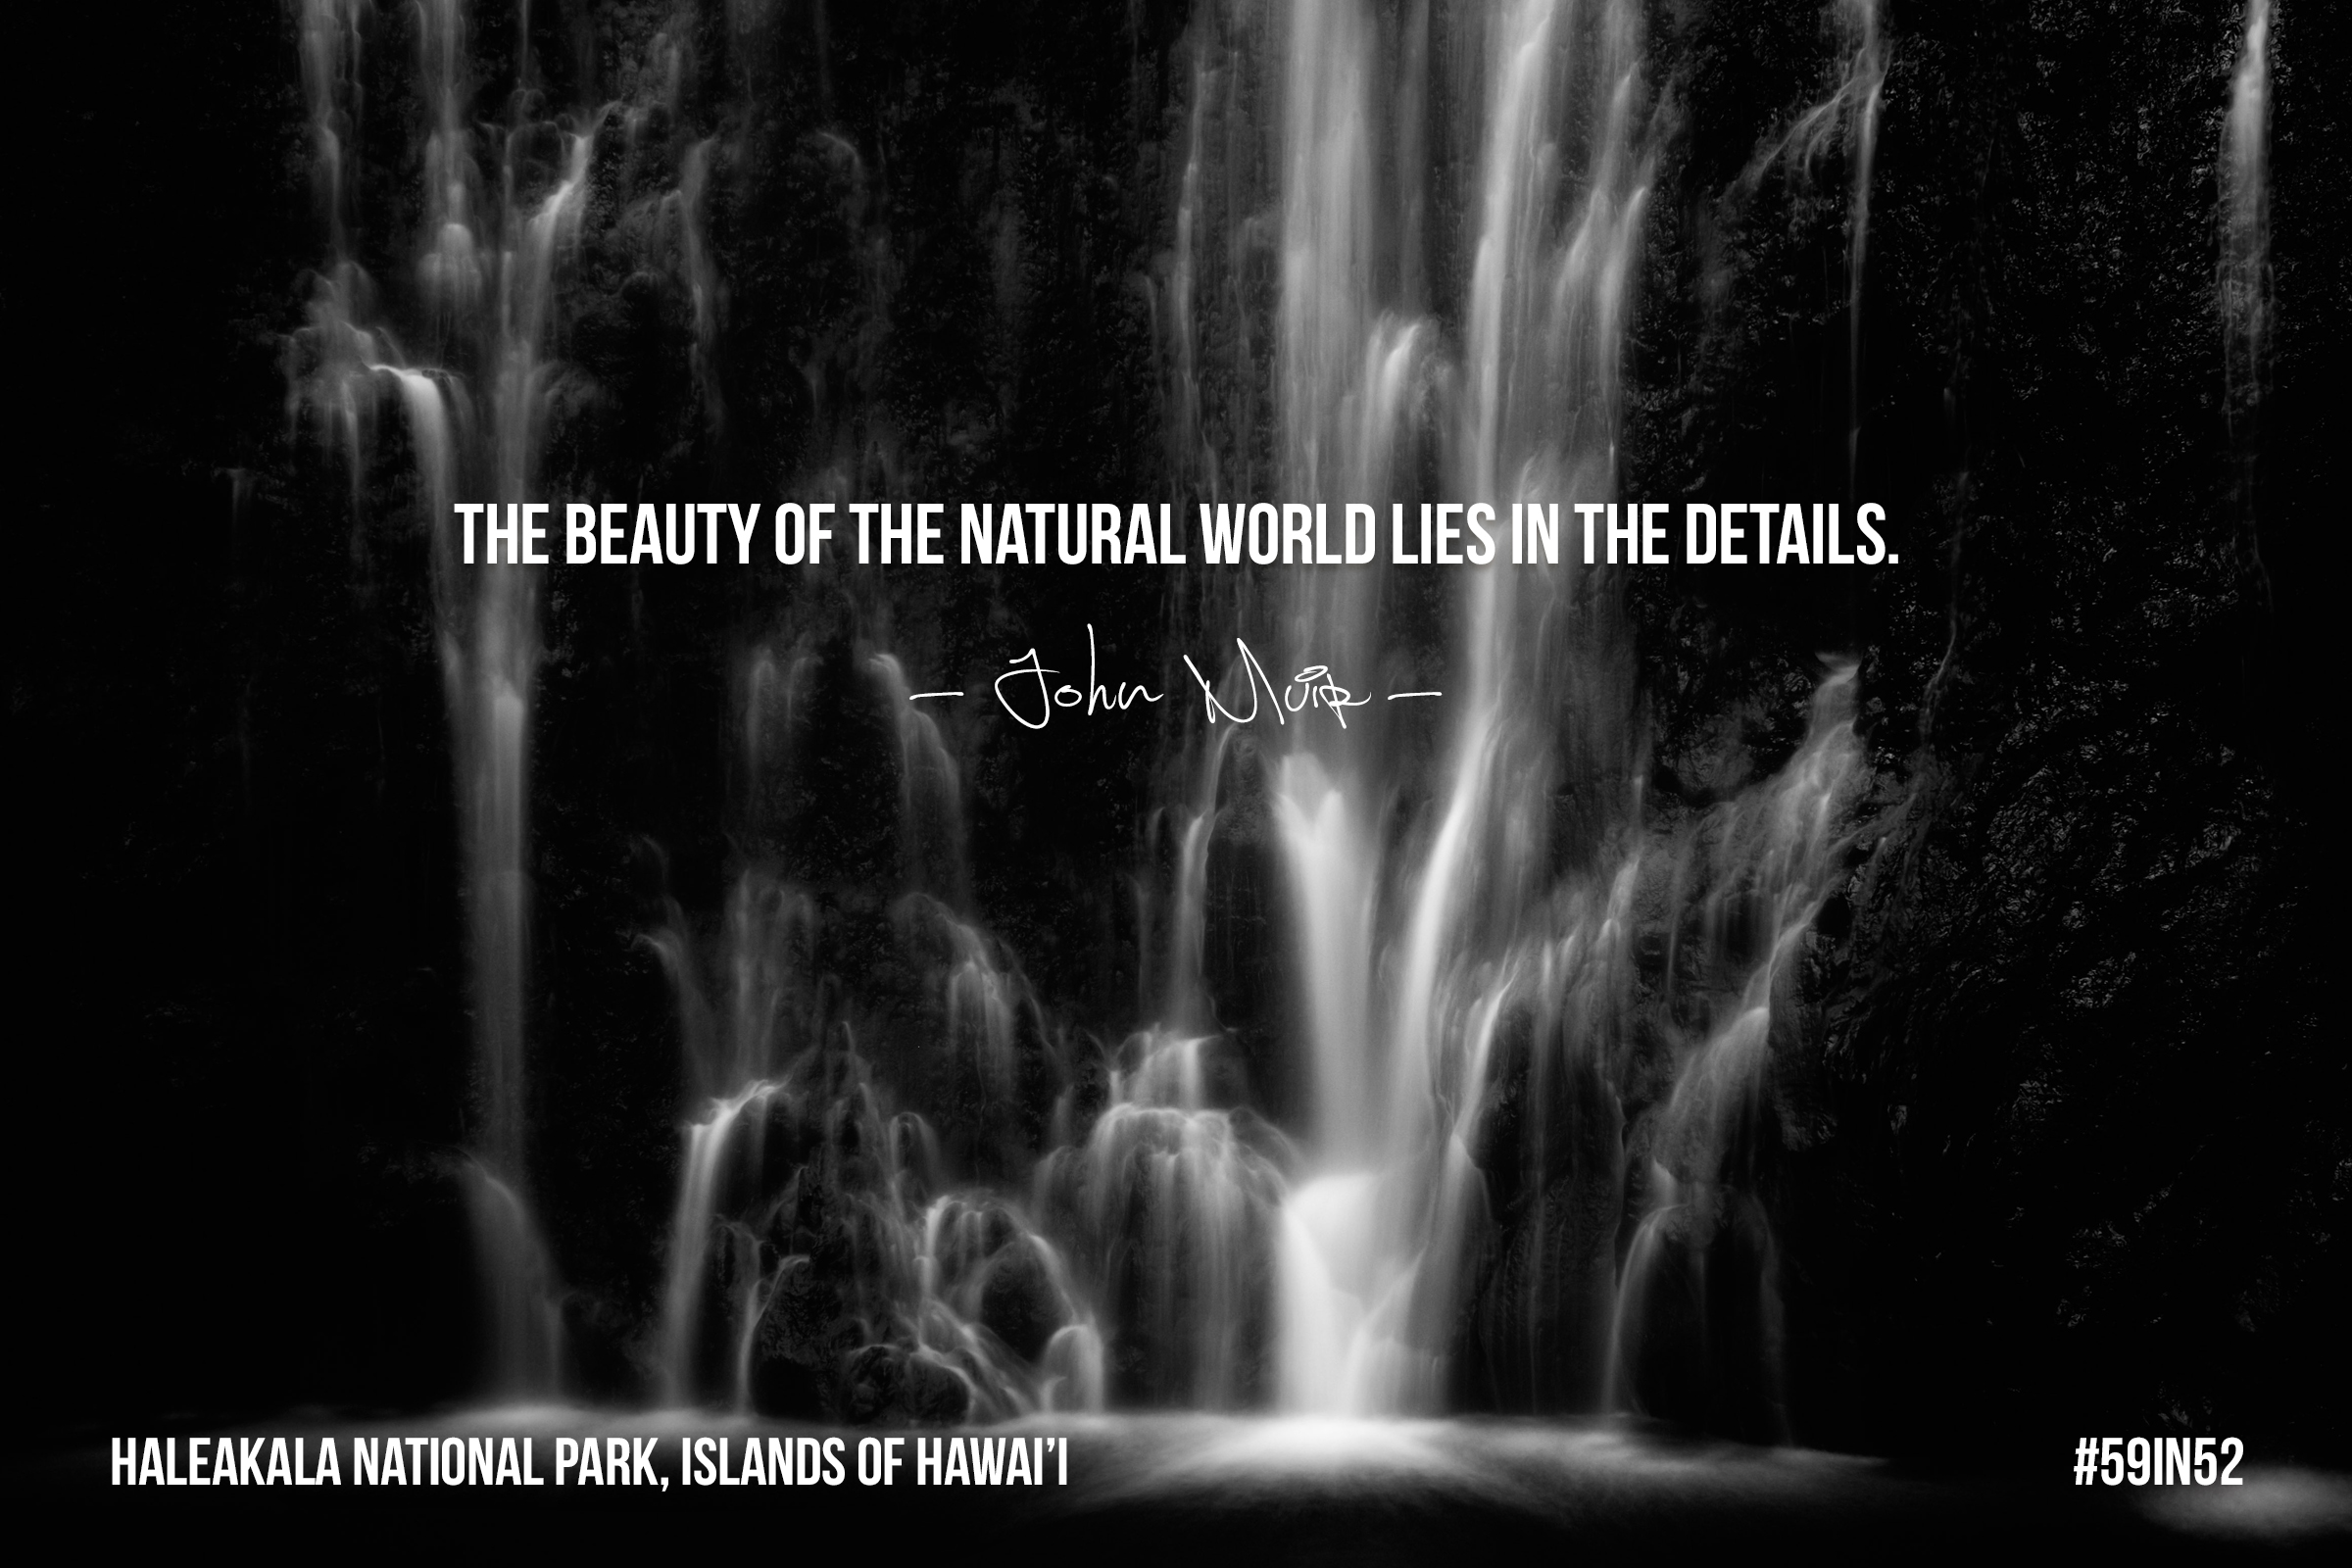 'The beauty of the natural world lies in the details.' — John Muir